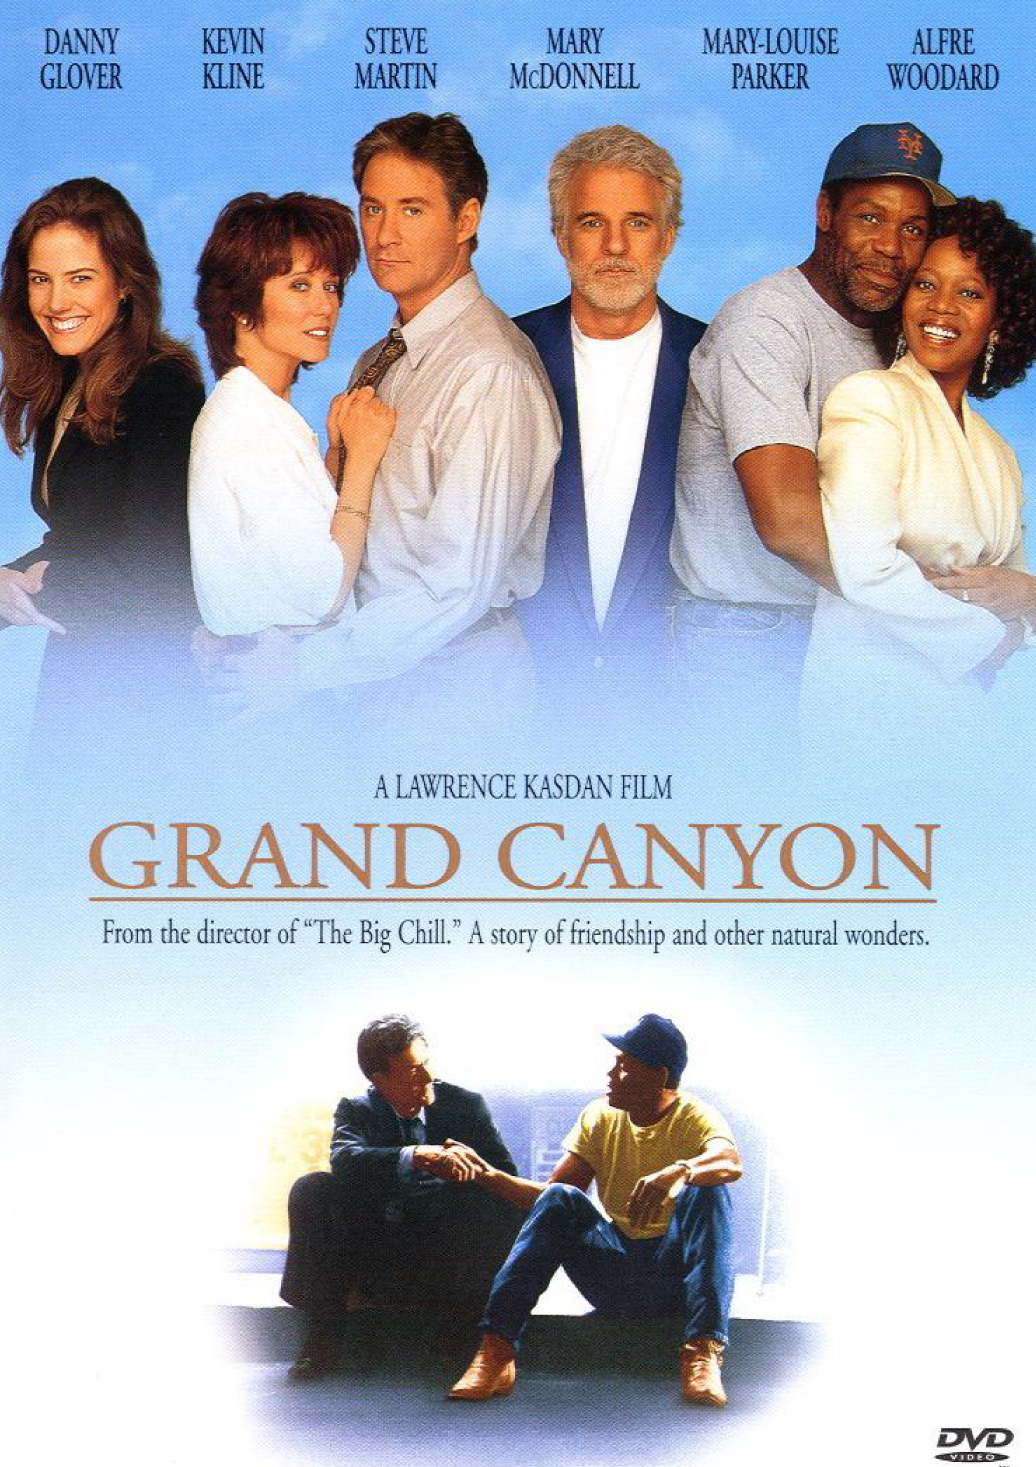 grand-canyon-poster-starring-steve-martin-danny-glover-kevin-kline-mary-louise-parker